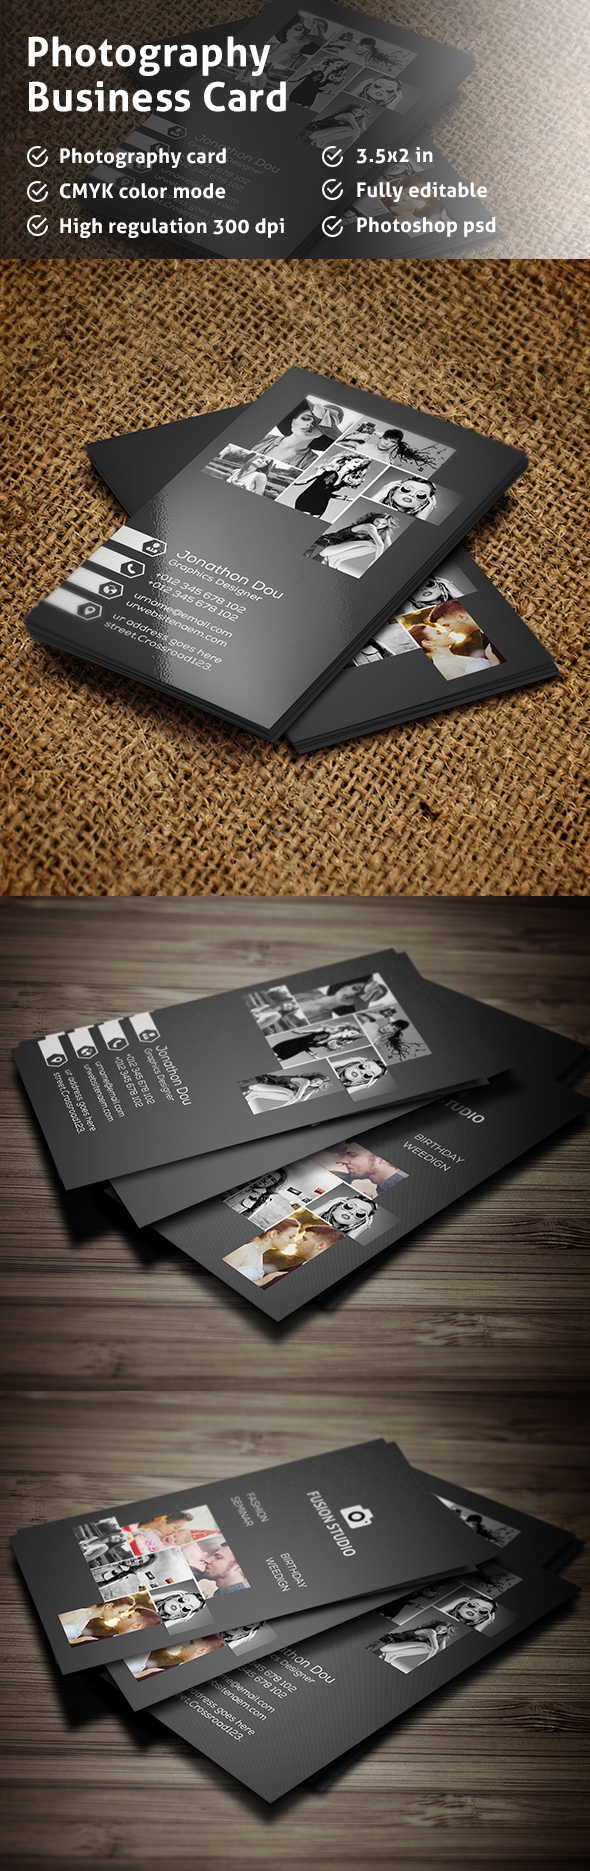 Free Photography Business Card on Behance | business card ...